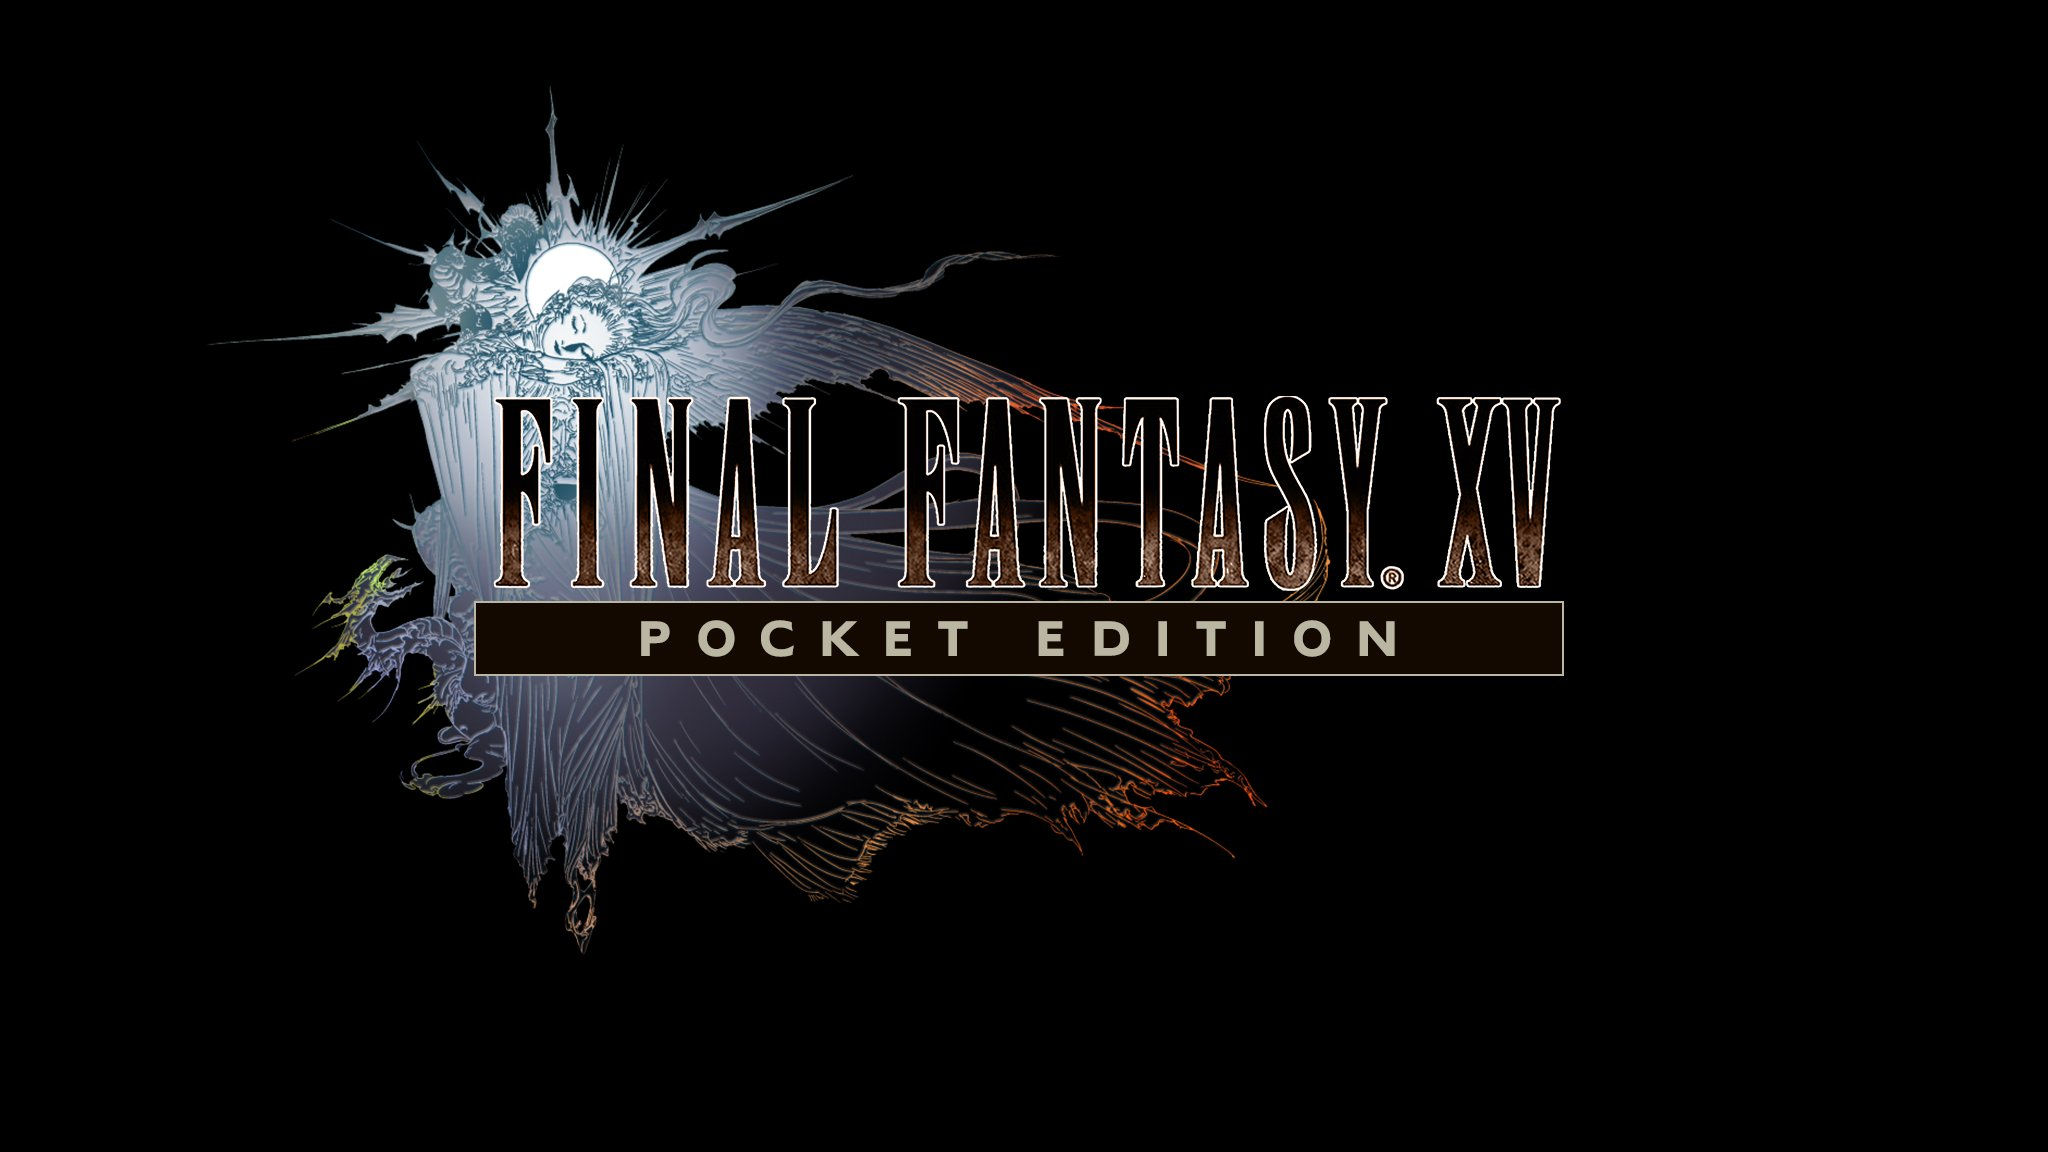 Final Fantasy Xv Pocket Edition For Smartphones And More